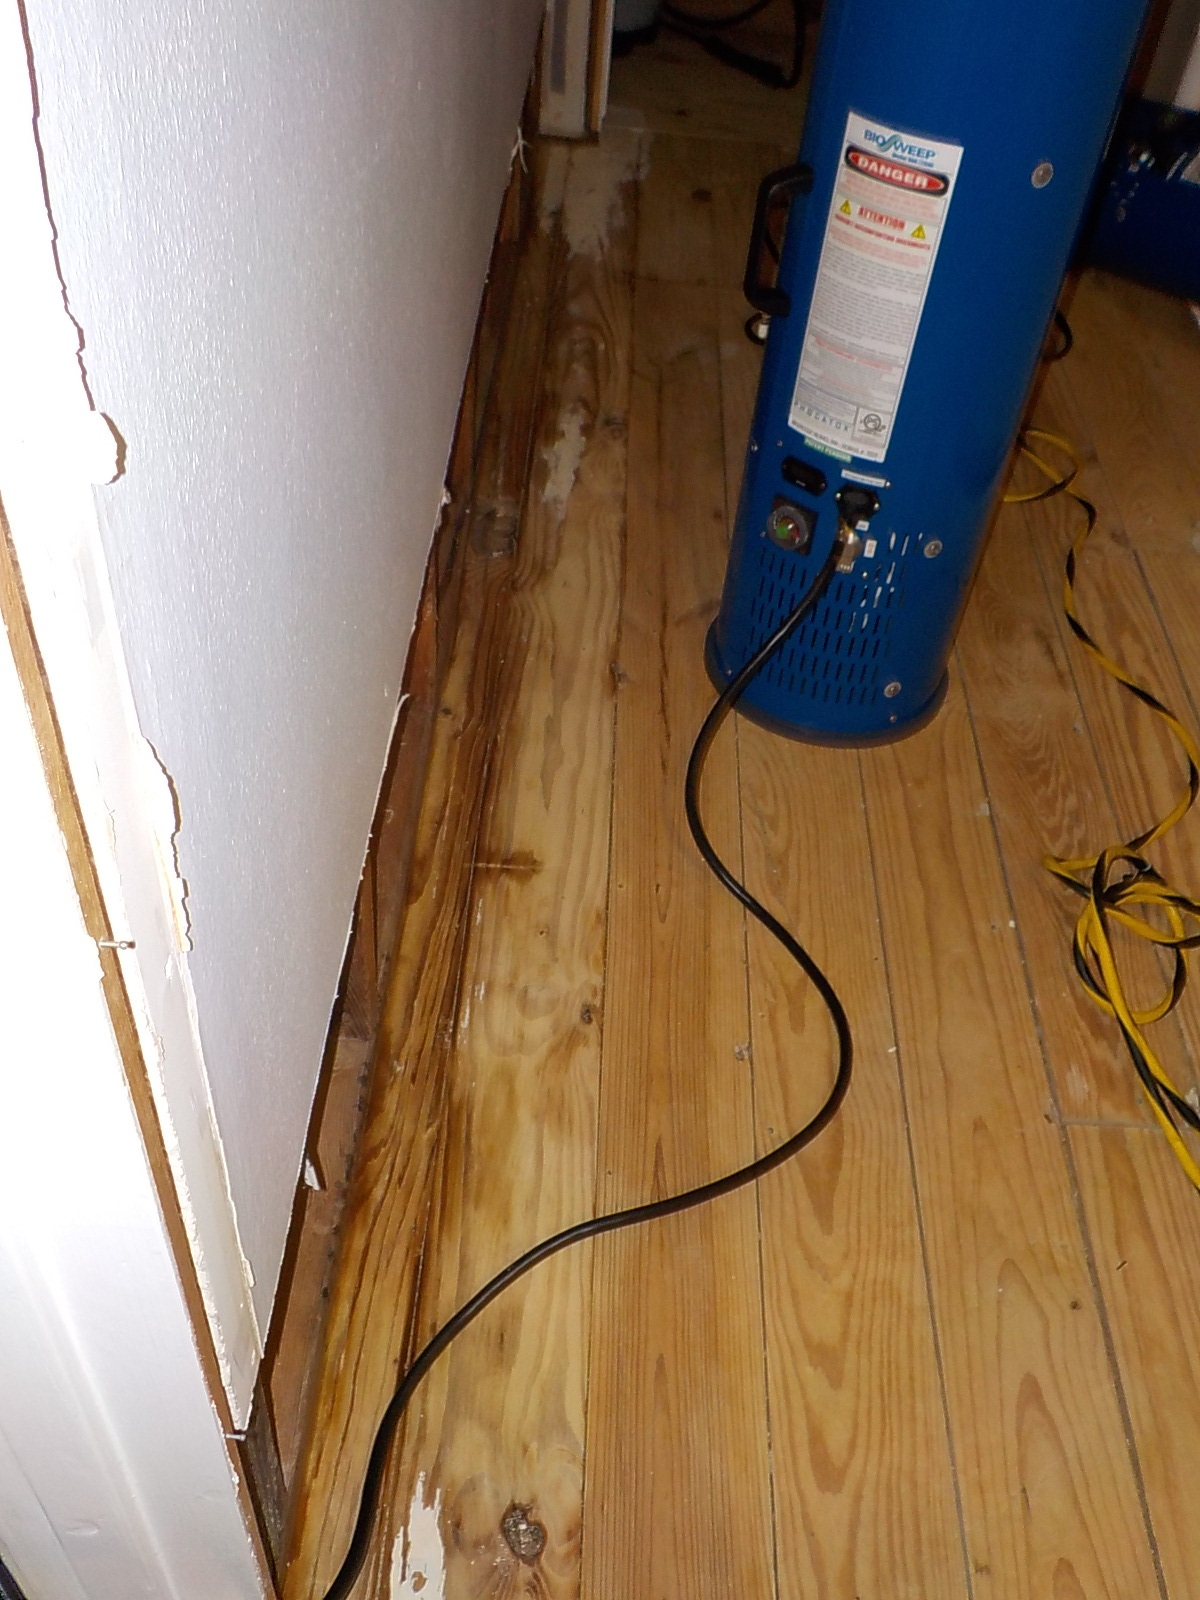 PET URINE REMOVAL - HOUSTON APARTMENT - URINE PENETRATTION IN SUB-WOOD FLOOR. URINE EXTRACTED FROM WOOD THEN ODOR WAS ELIMINATED BY OUIR ADVANCED TECHNOLOGY - HYDROGEN PEROXIDE.